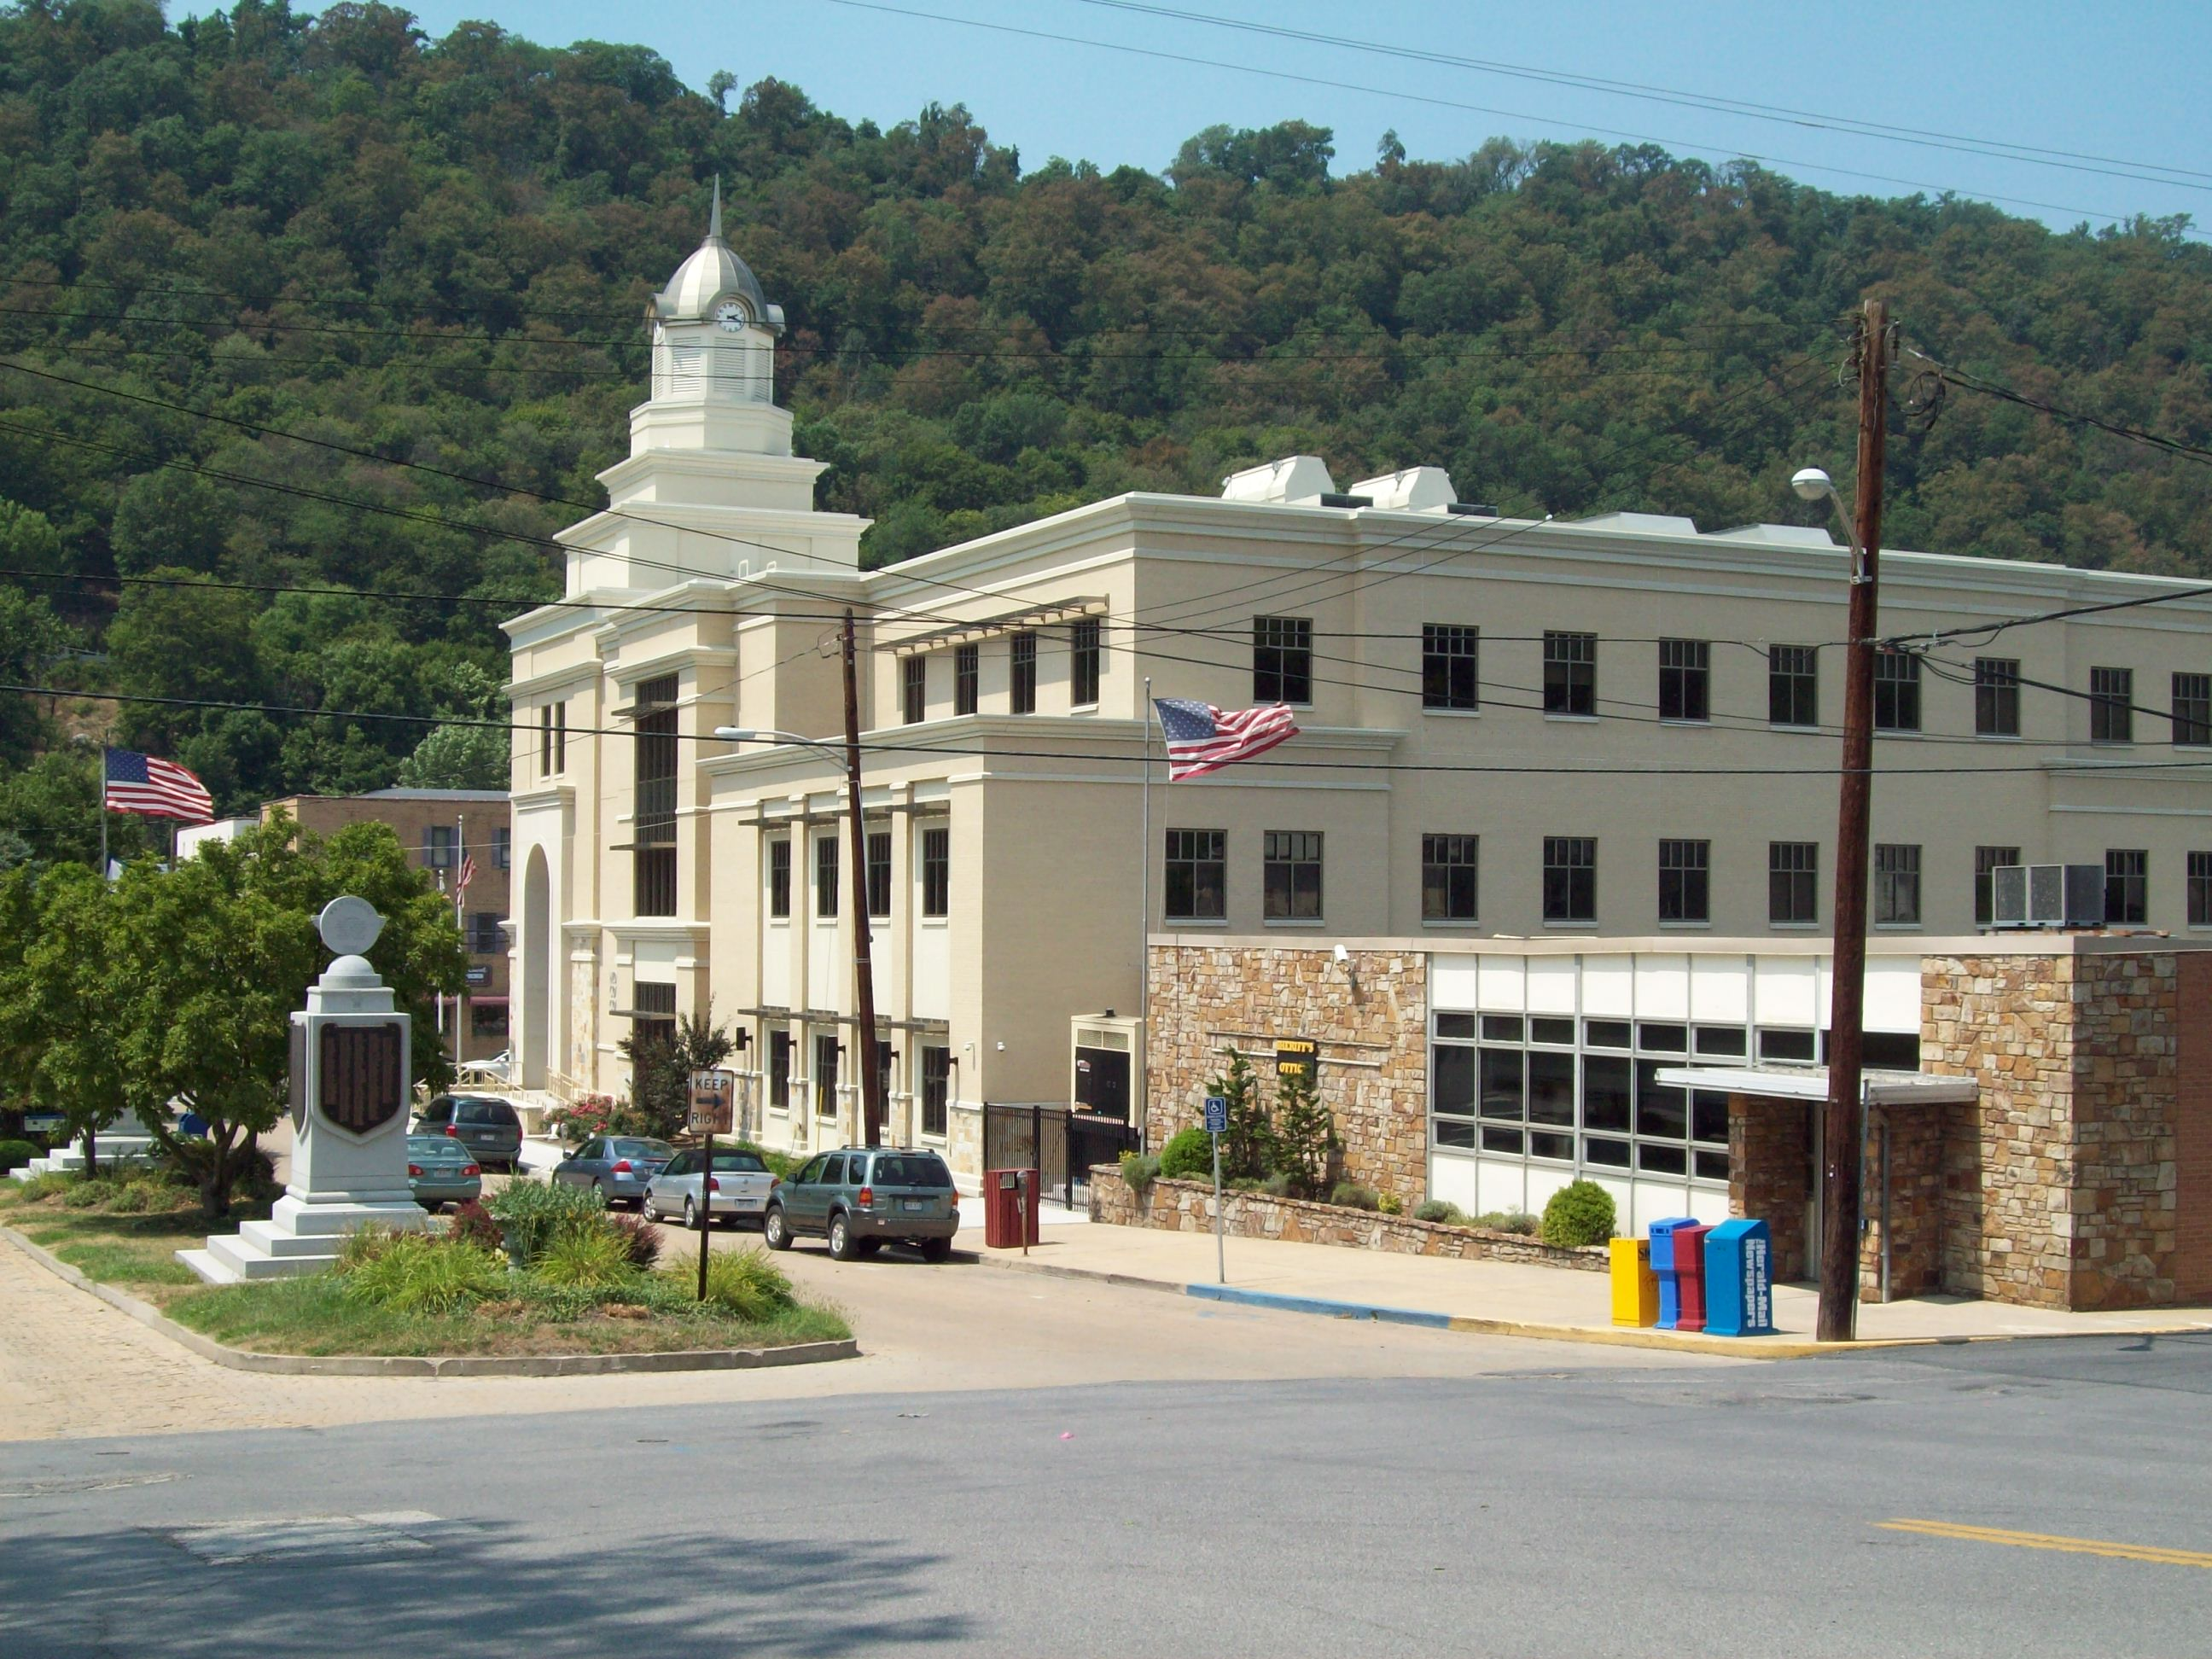 Photo of the courthouse taken in July, 2011.